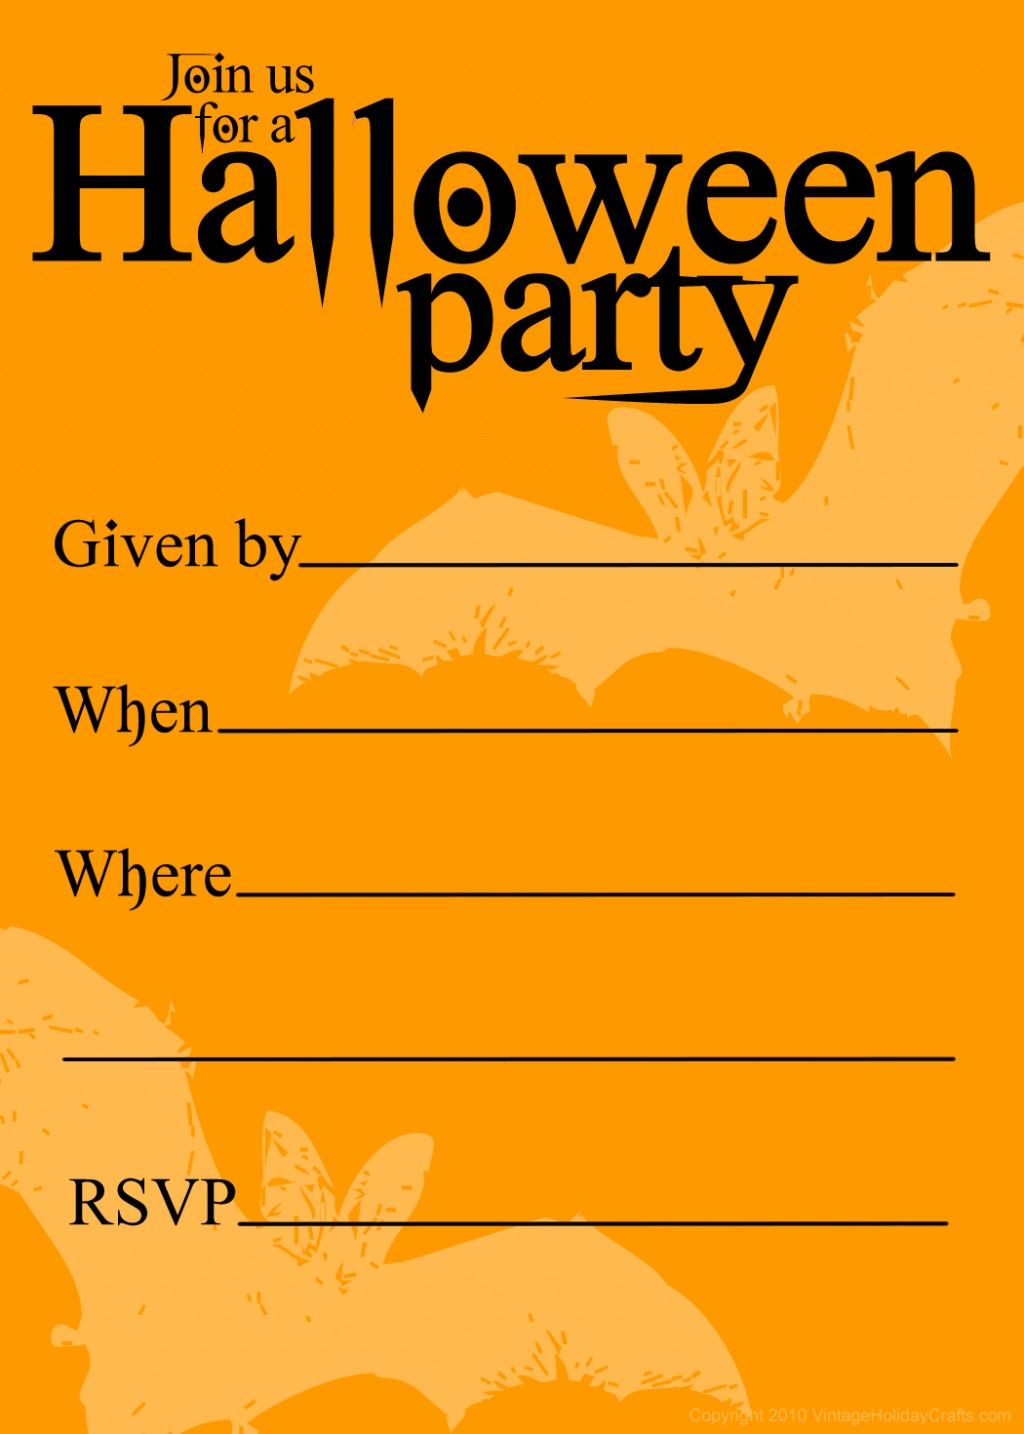 free printable halloween birthday invitations templates halloween party invitations printable free scary free download get